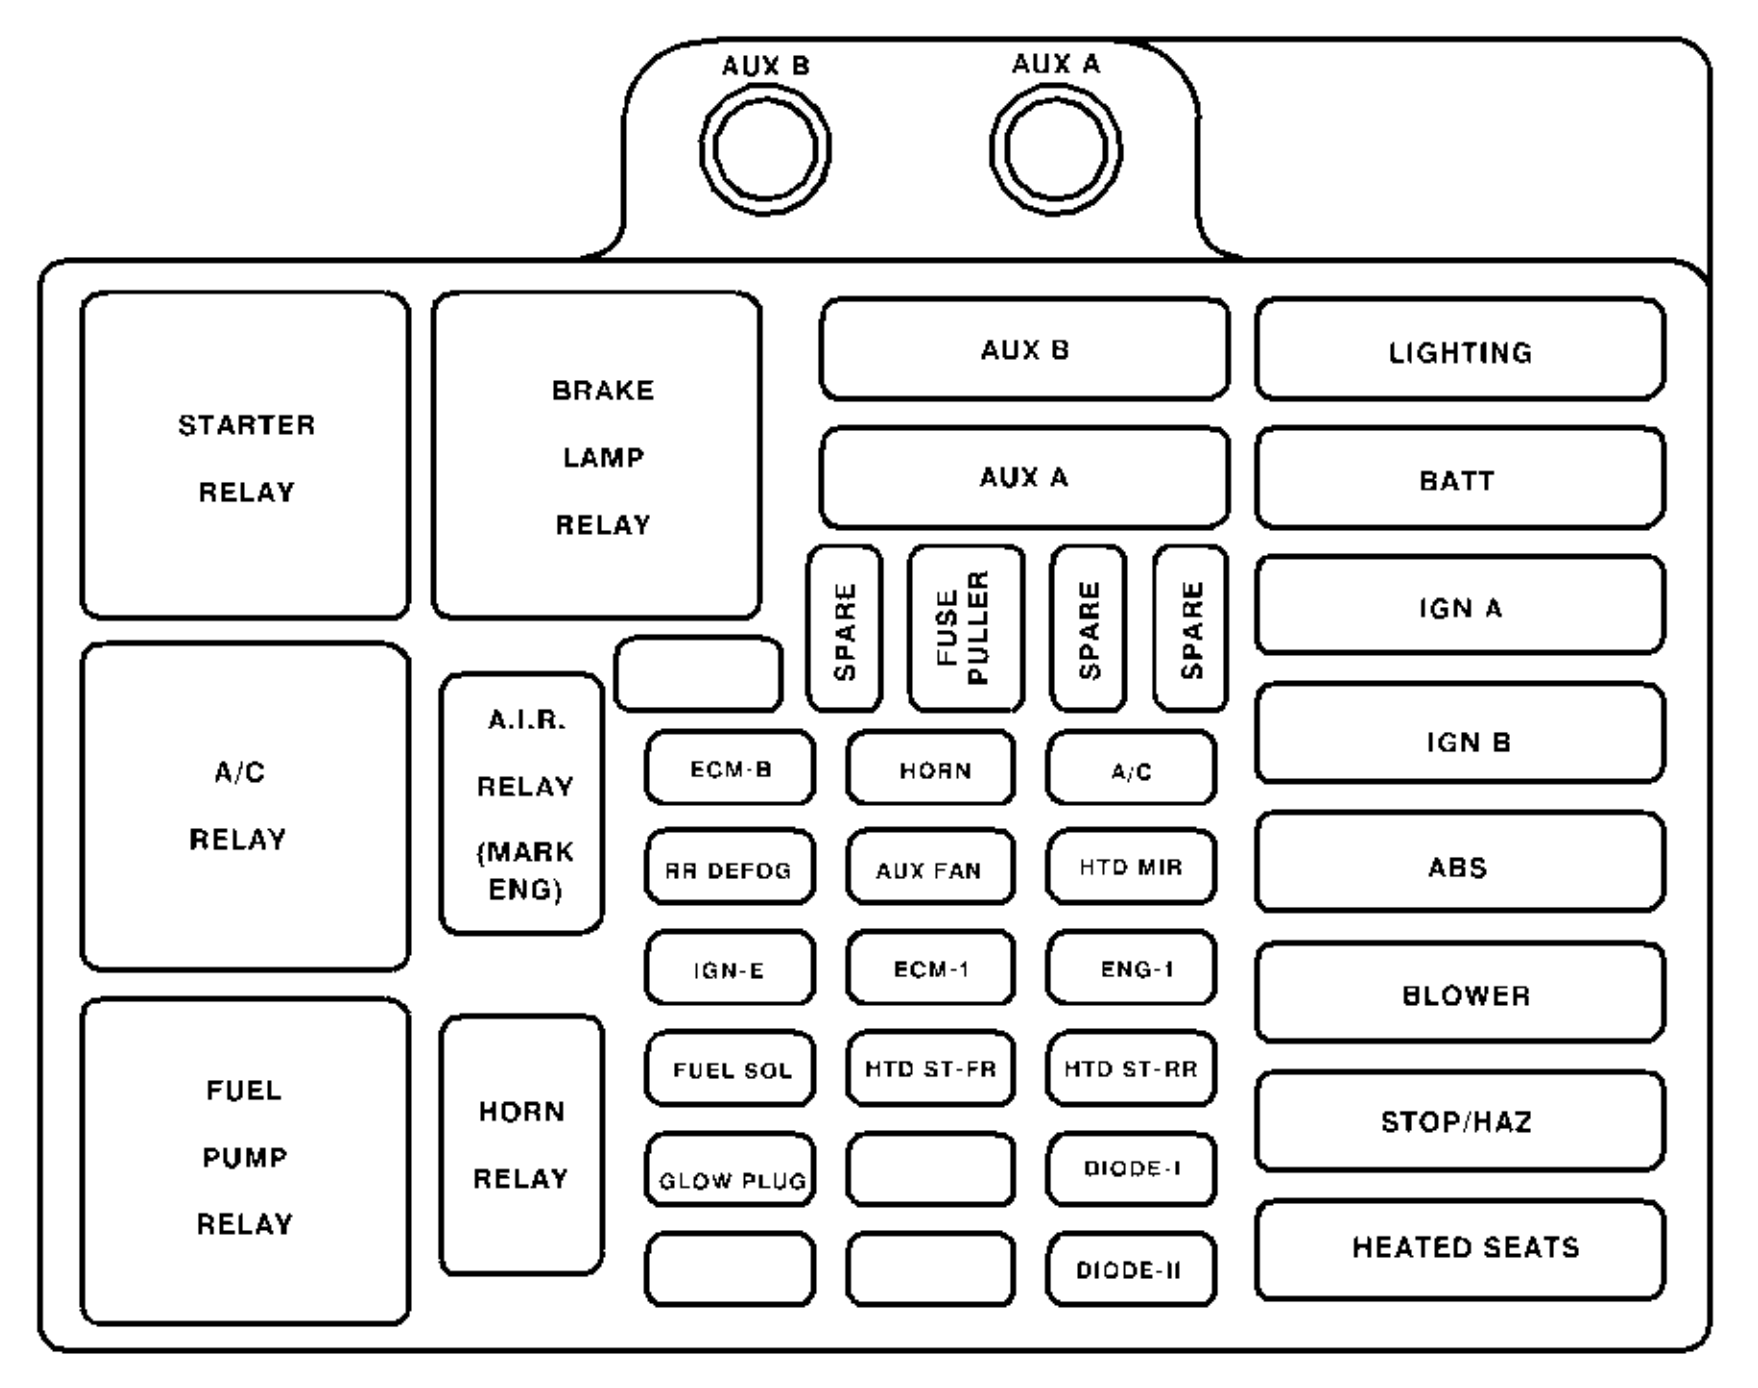 Chevrolet Tahoe  1999  - Fuse Box Diagram